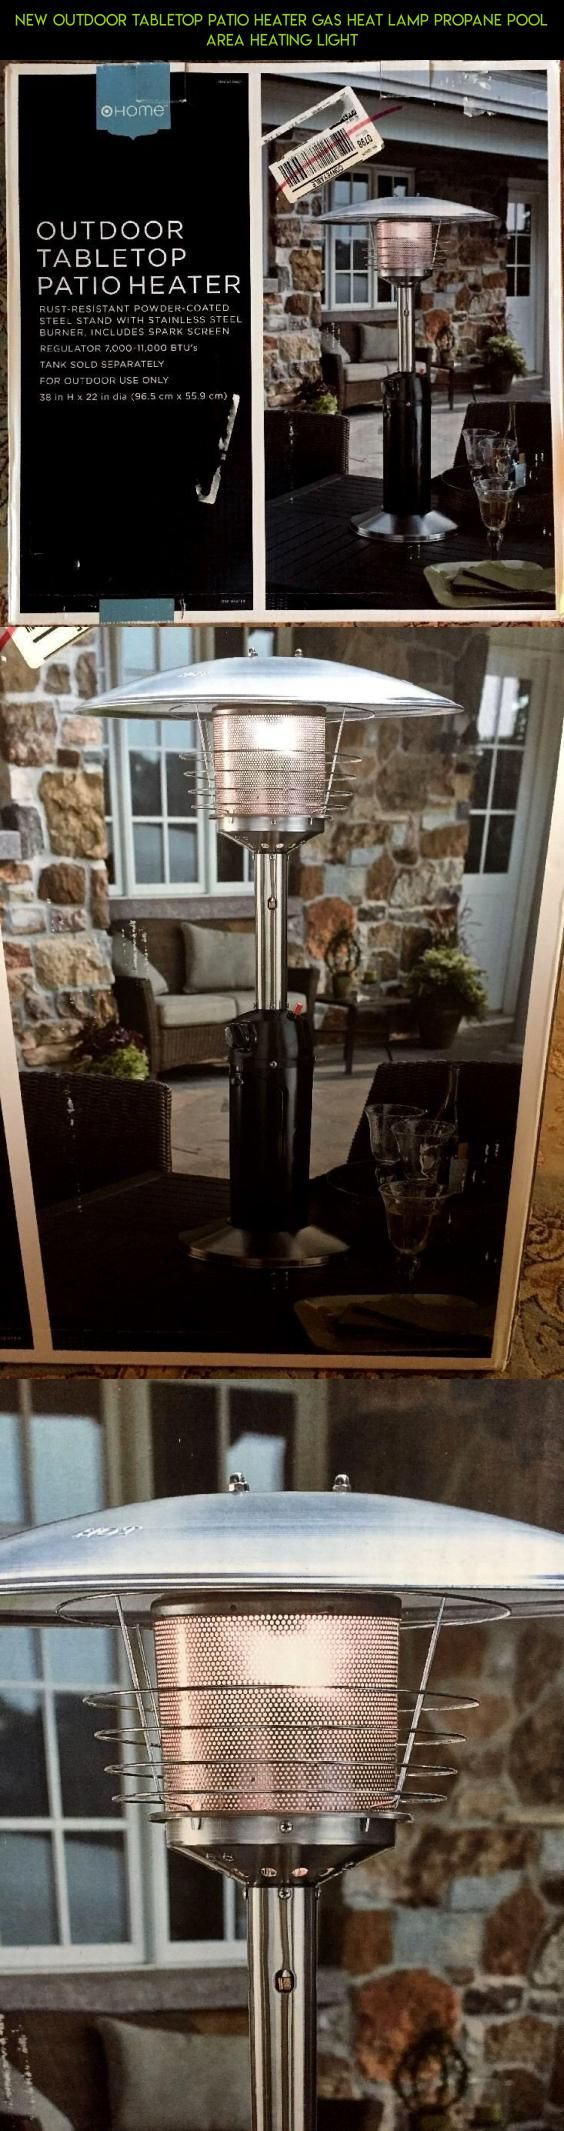 NEW Outdoor Tabletop Patio Heater Gas Heat Lamp Propane Pool Area Heating Light #gadgets #drone #plans #racing #lamp #heating #products #shopping #camera #kit #tech #fpv #technology #parts